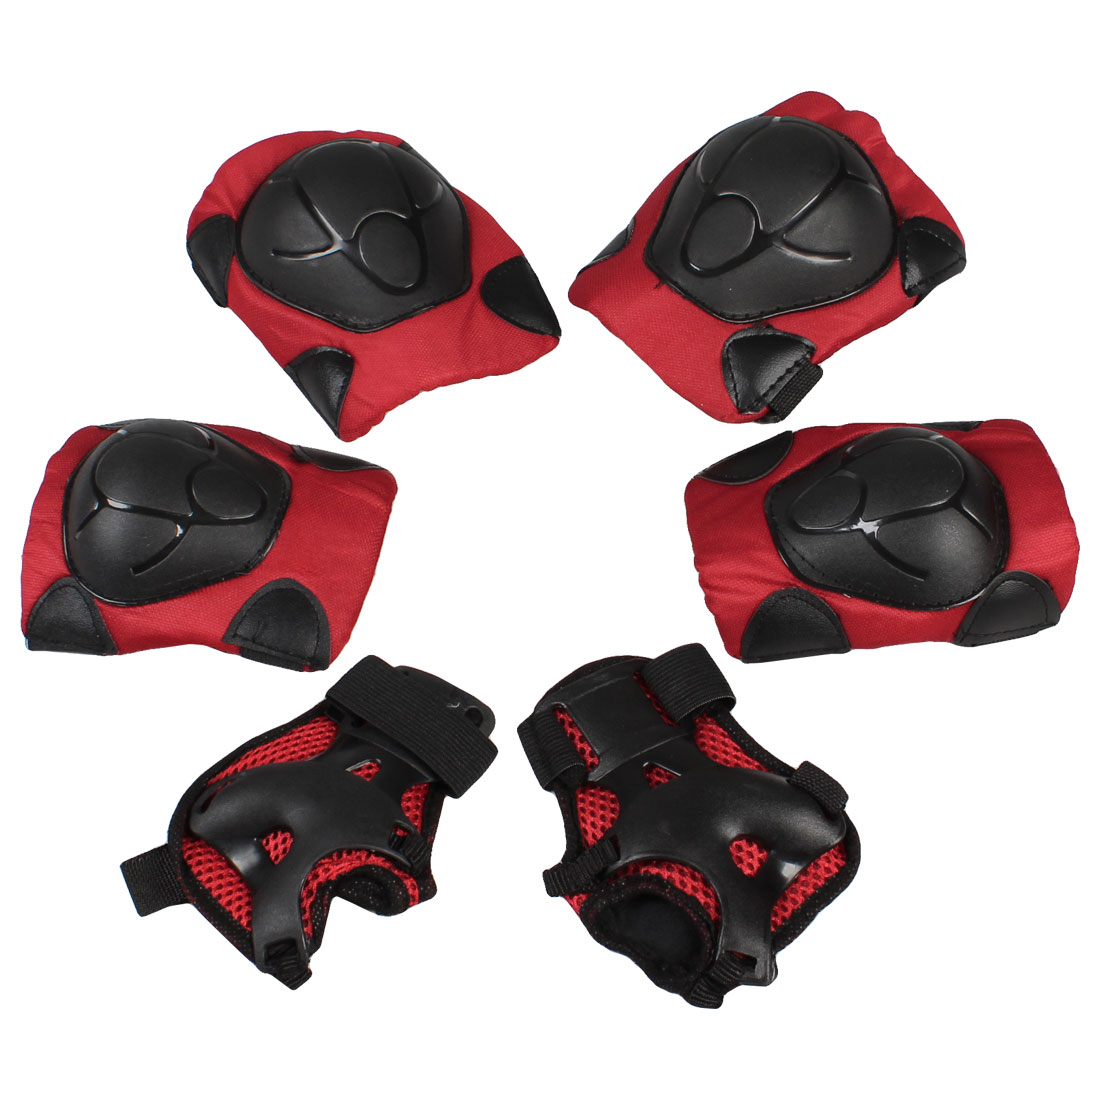 6Pcs Skateboarding Skating Wrist Guard Elbow Pads Knee Pads Safety Gear Set for Kids